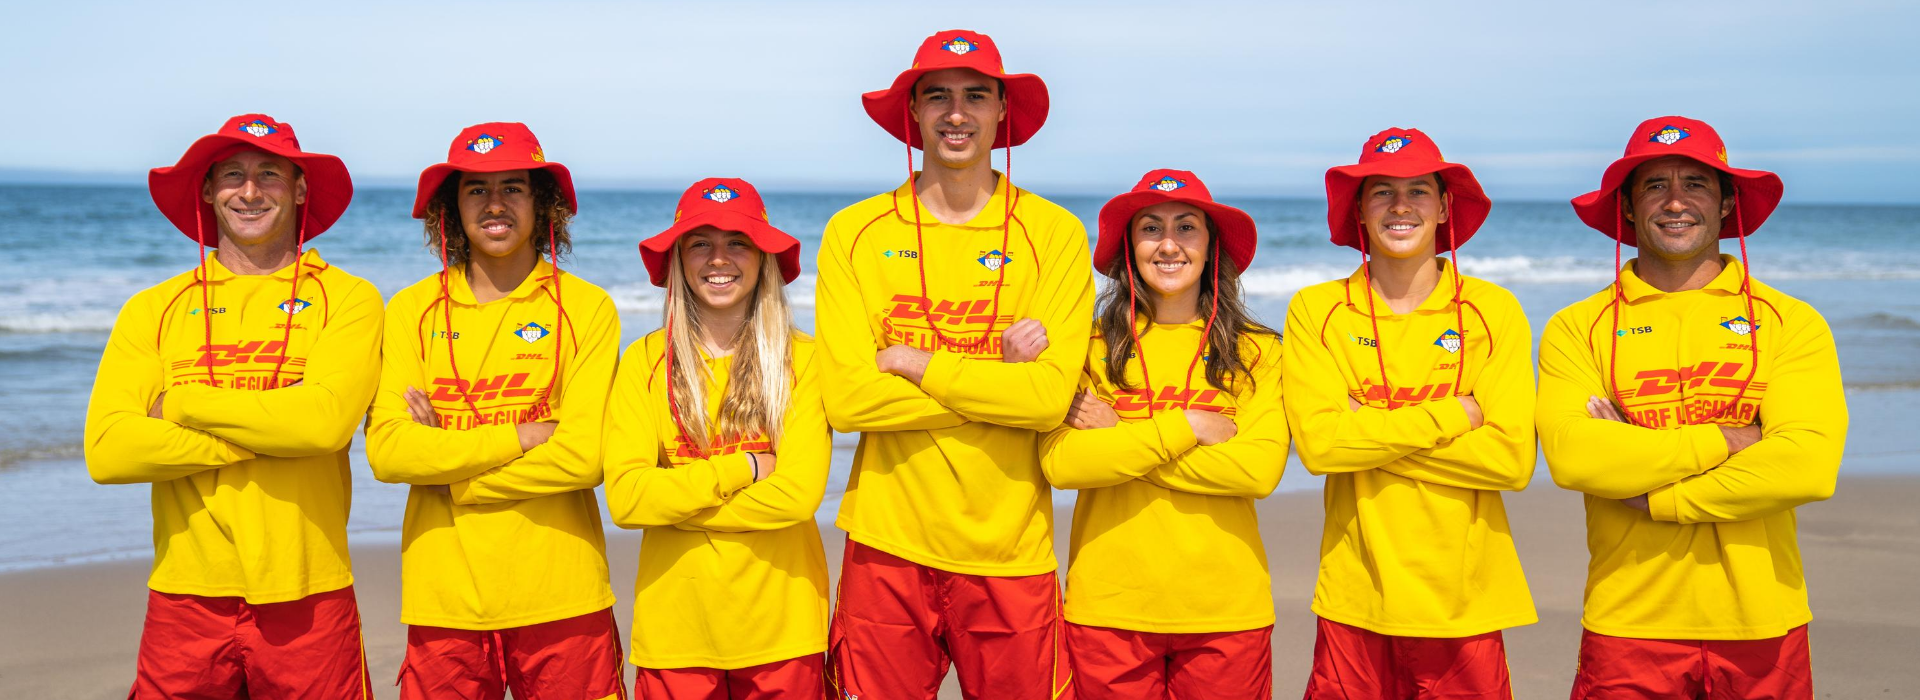 Big Group of SLSNZ Lifeguards folding arms